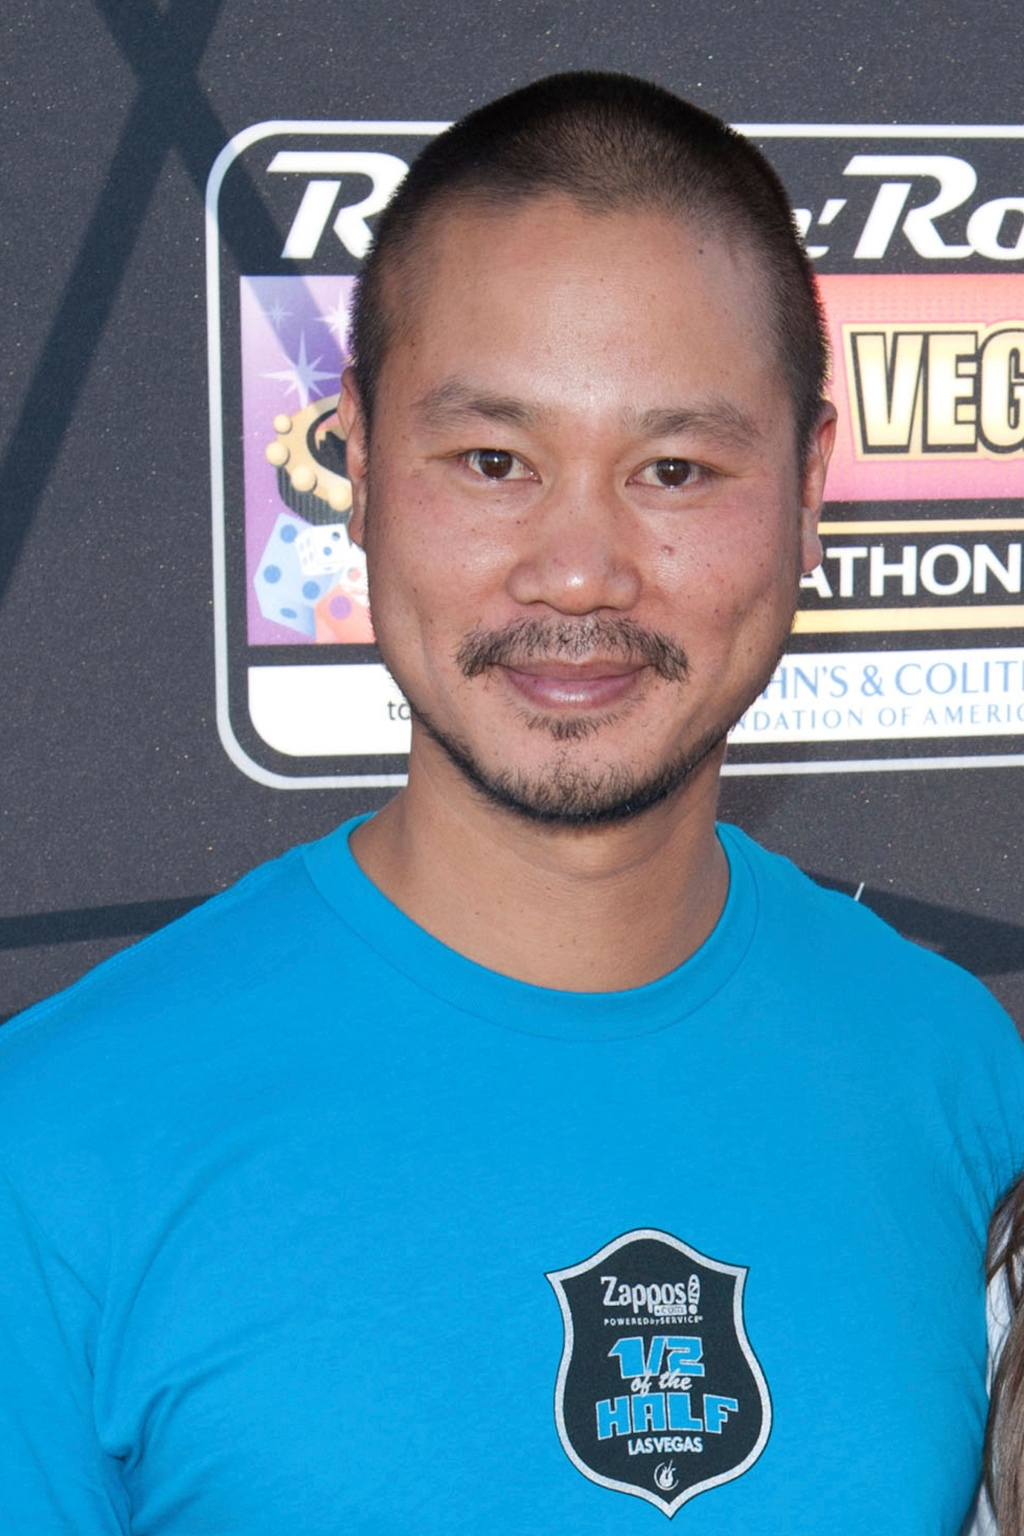 **FILE PHOTO** Former Zappos CEO Tony Hsieh, Has Passed Away at 46. LAS VEGAS, NV - November 17: Tony Hsieh at Las vegas Rock n Rol Marathon in Las Vegas, Nevada. Credit: Erik Kabik Photography/MediaPunch. /IPX